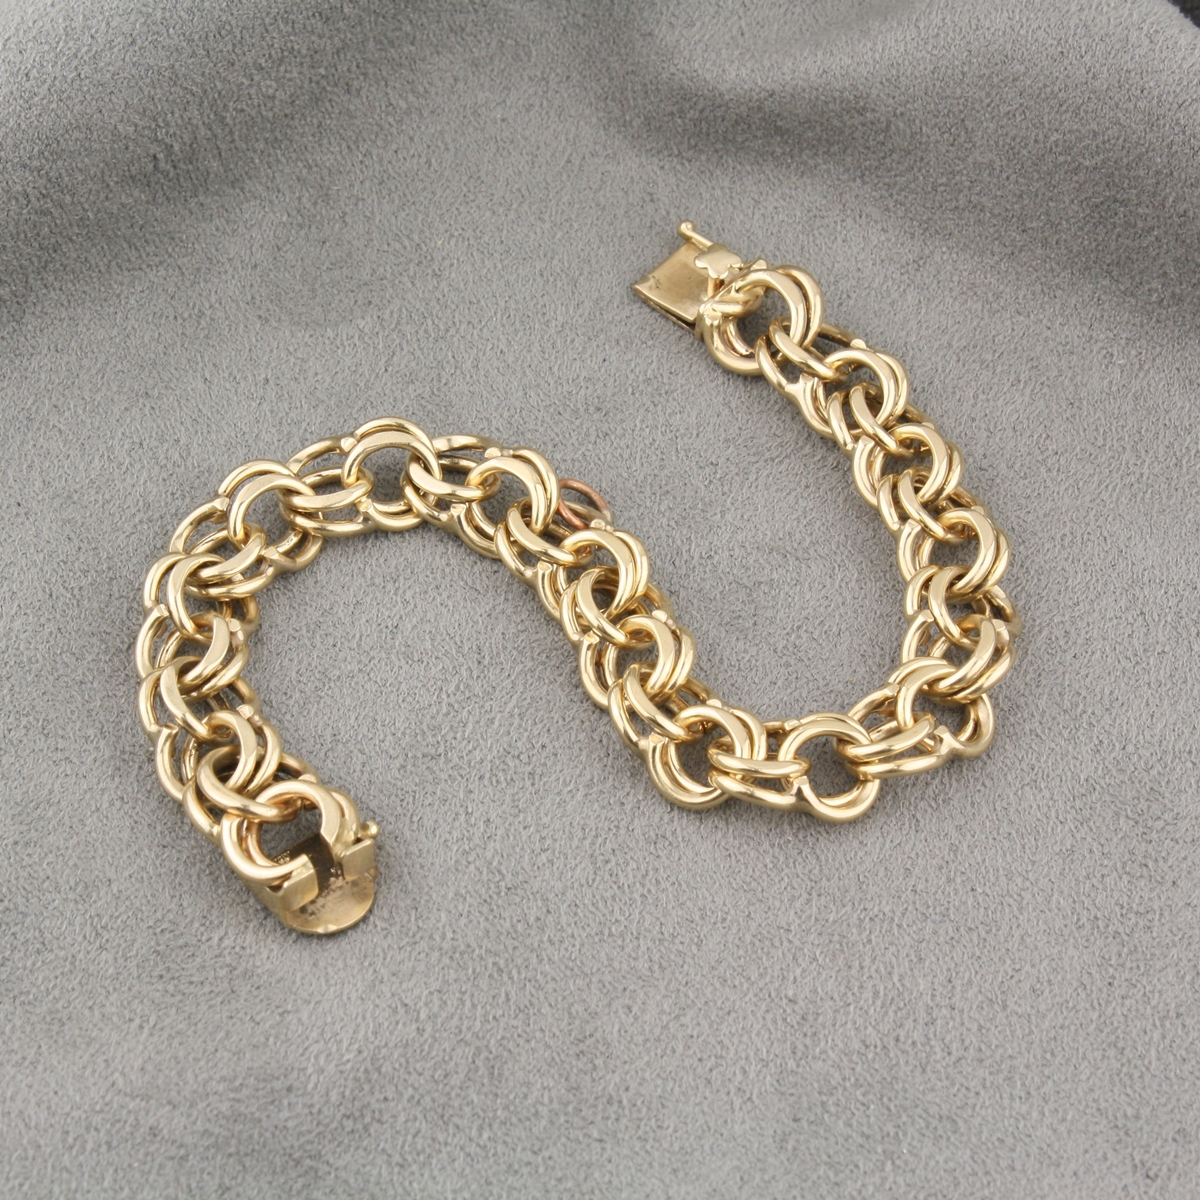 preowned 14 karat yellow gold charm bracelet